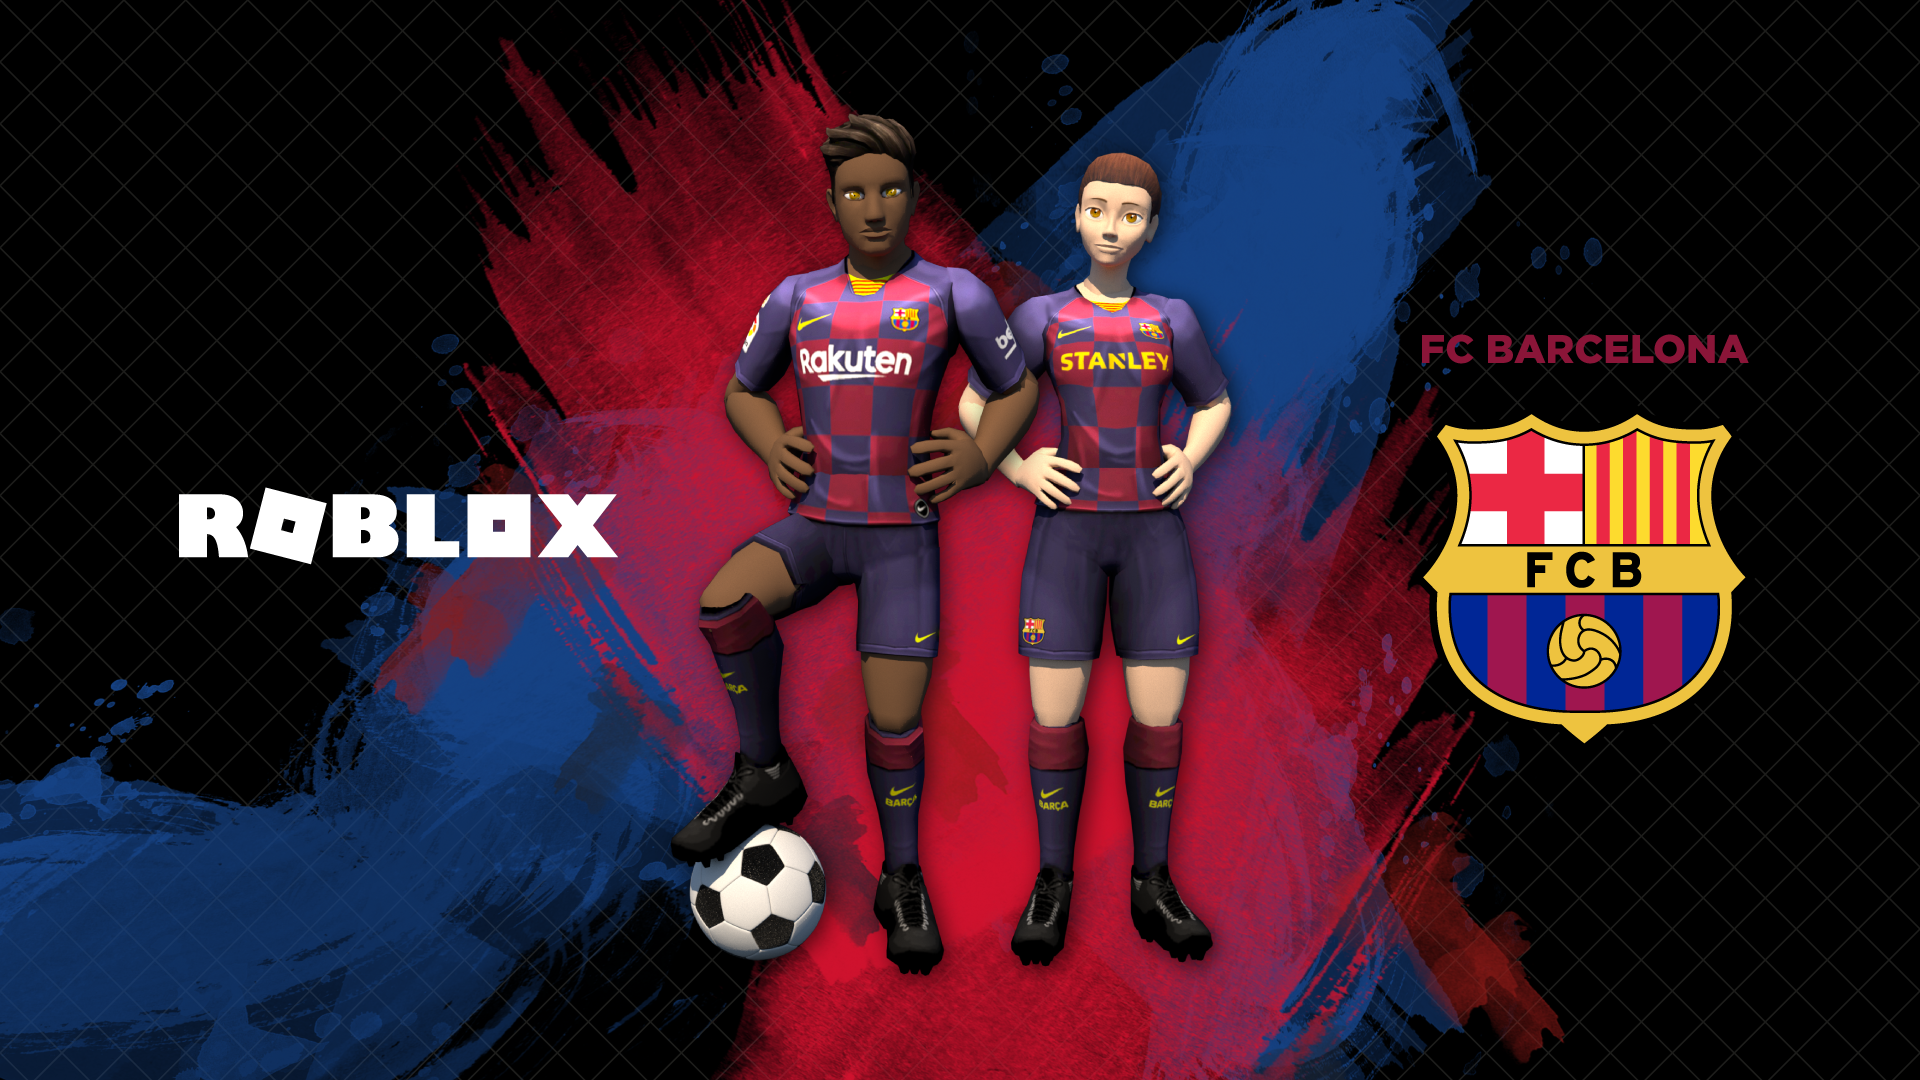 Roblox Players Pictures Girls Barca And Roblox Join Forces To Bring More Than 90 Million